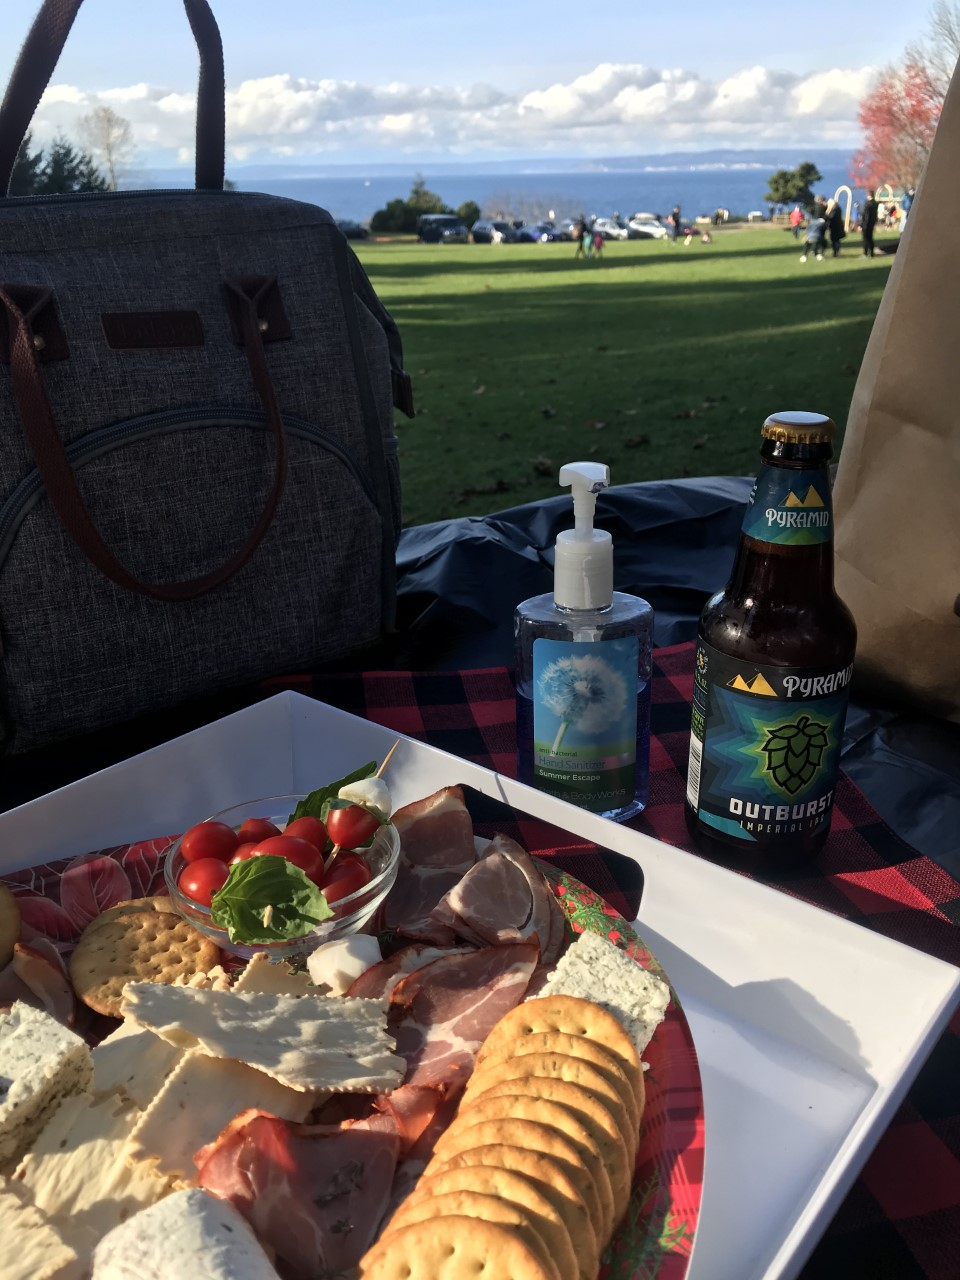 charcuterie board with crackers, meats, cheese and fruits resting on a pinic cloth with a bottle of Pyramid beer. In the background is a blue sky and green park